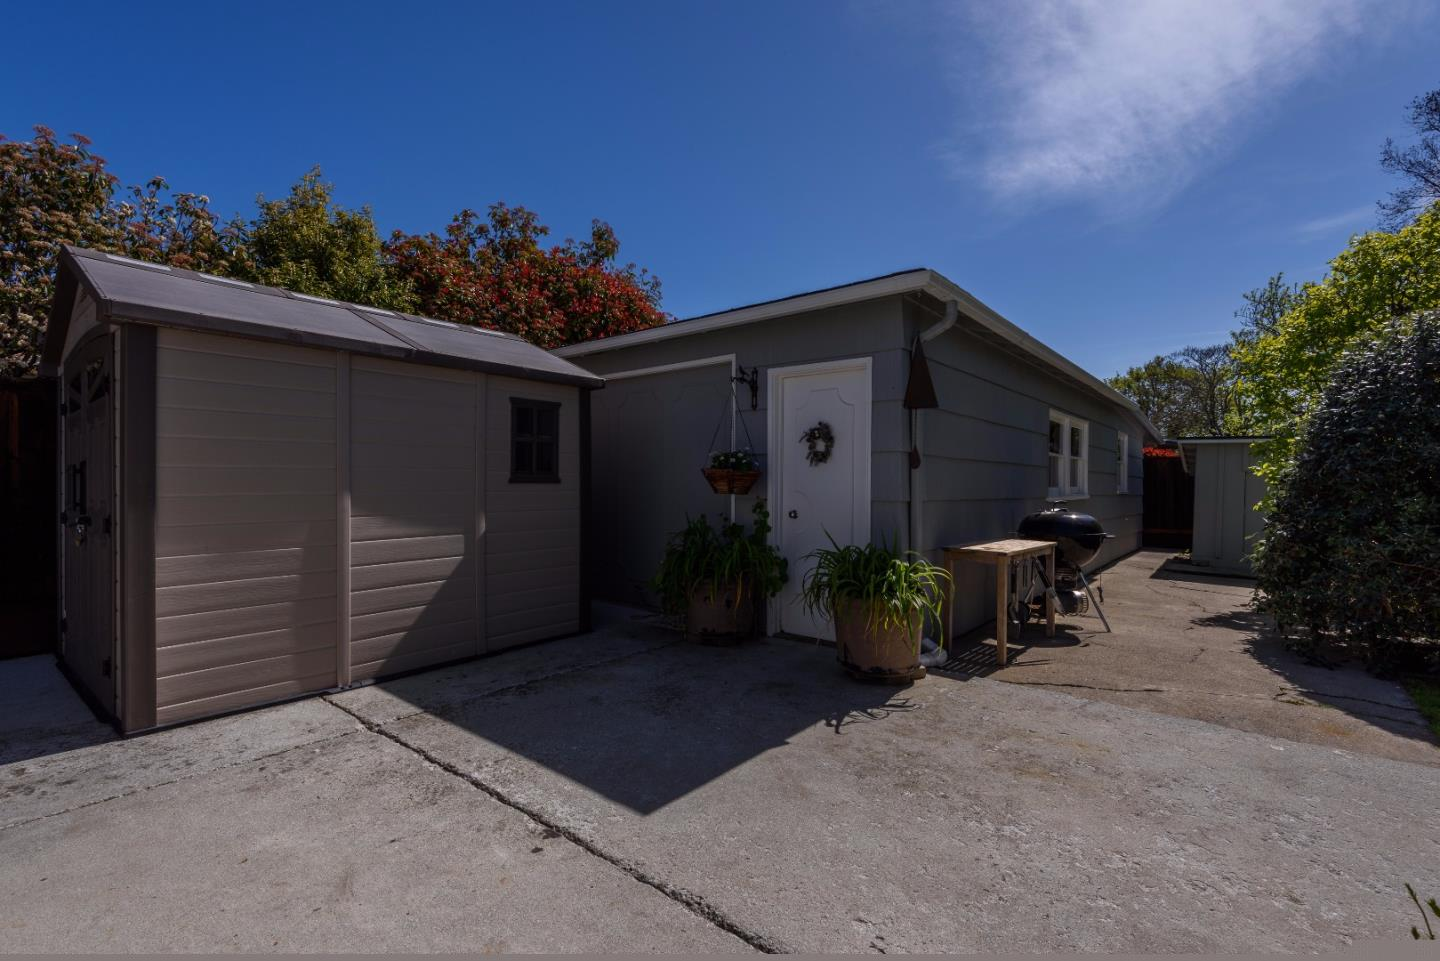 Additional photo for property listing at 1917 Oak Ave  REDWOOD CITY, CALIFORNIA 94061